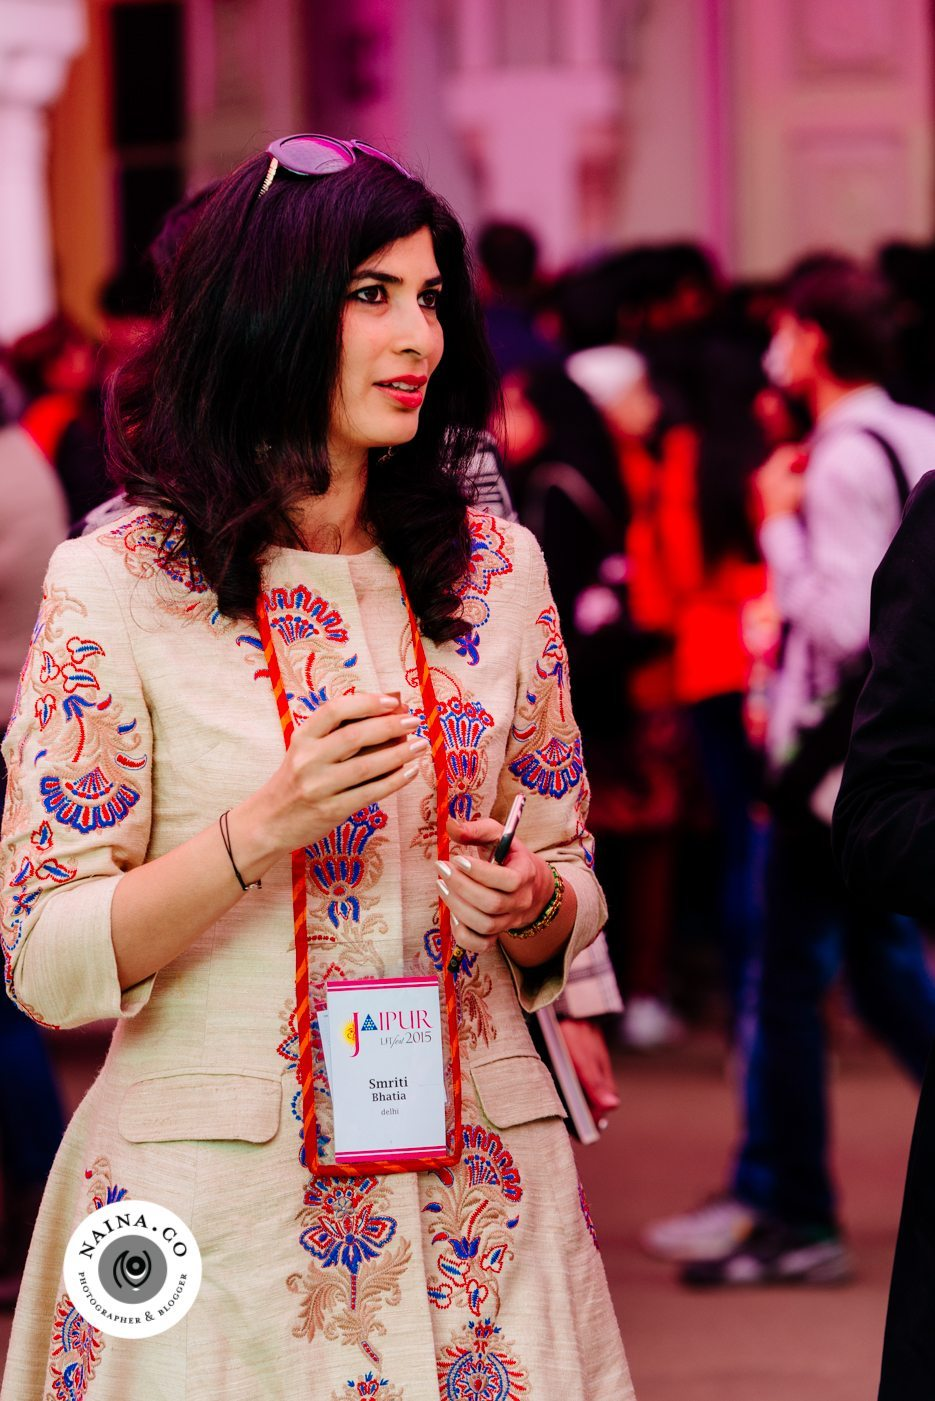 Naina.co-Raconteuse-Visuelle-Photographer-Blogger-Storyteller-Luxury-Lifestyle-January-2015-Jaipur-Literature-Festival-StRegis-LeMeridien